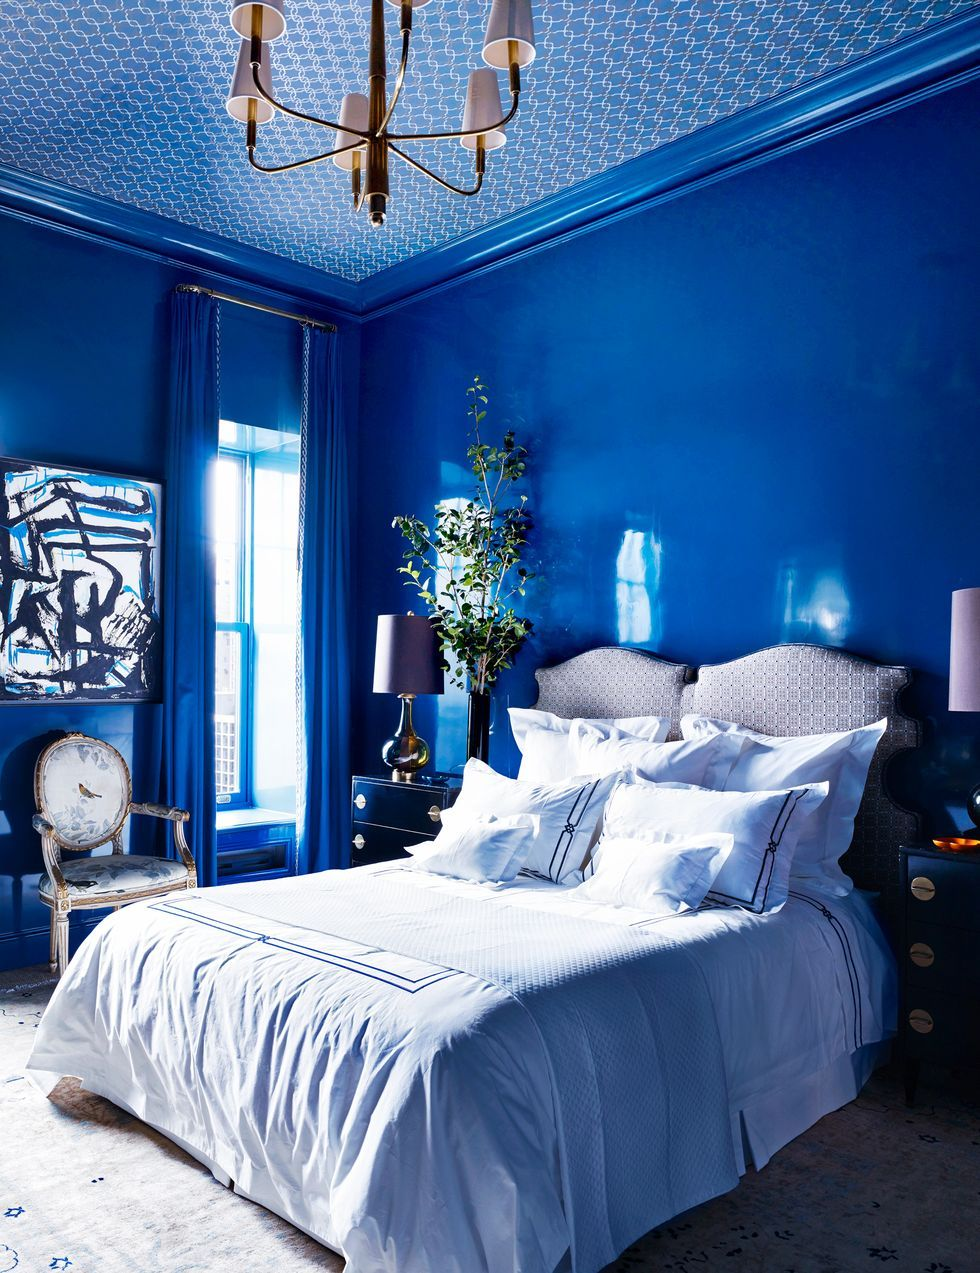 24 Lovely Bedroom Colors That'll Make You Wake Up Happier ...